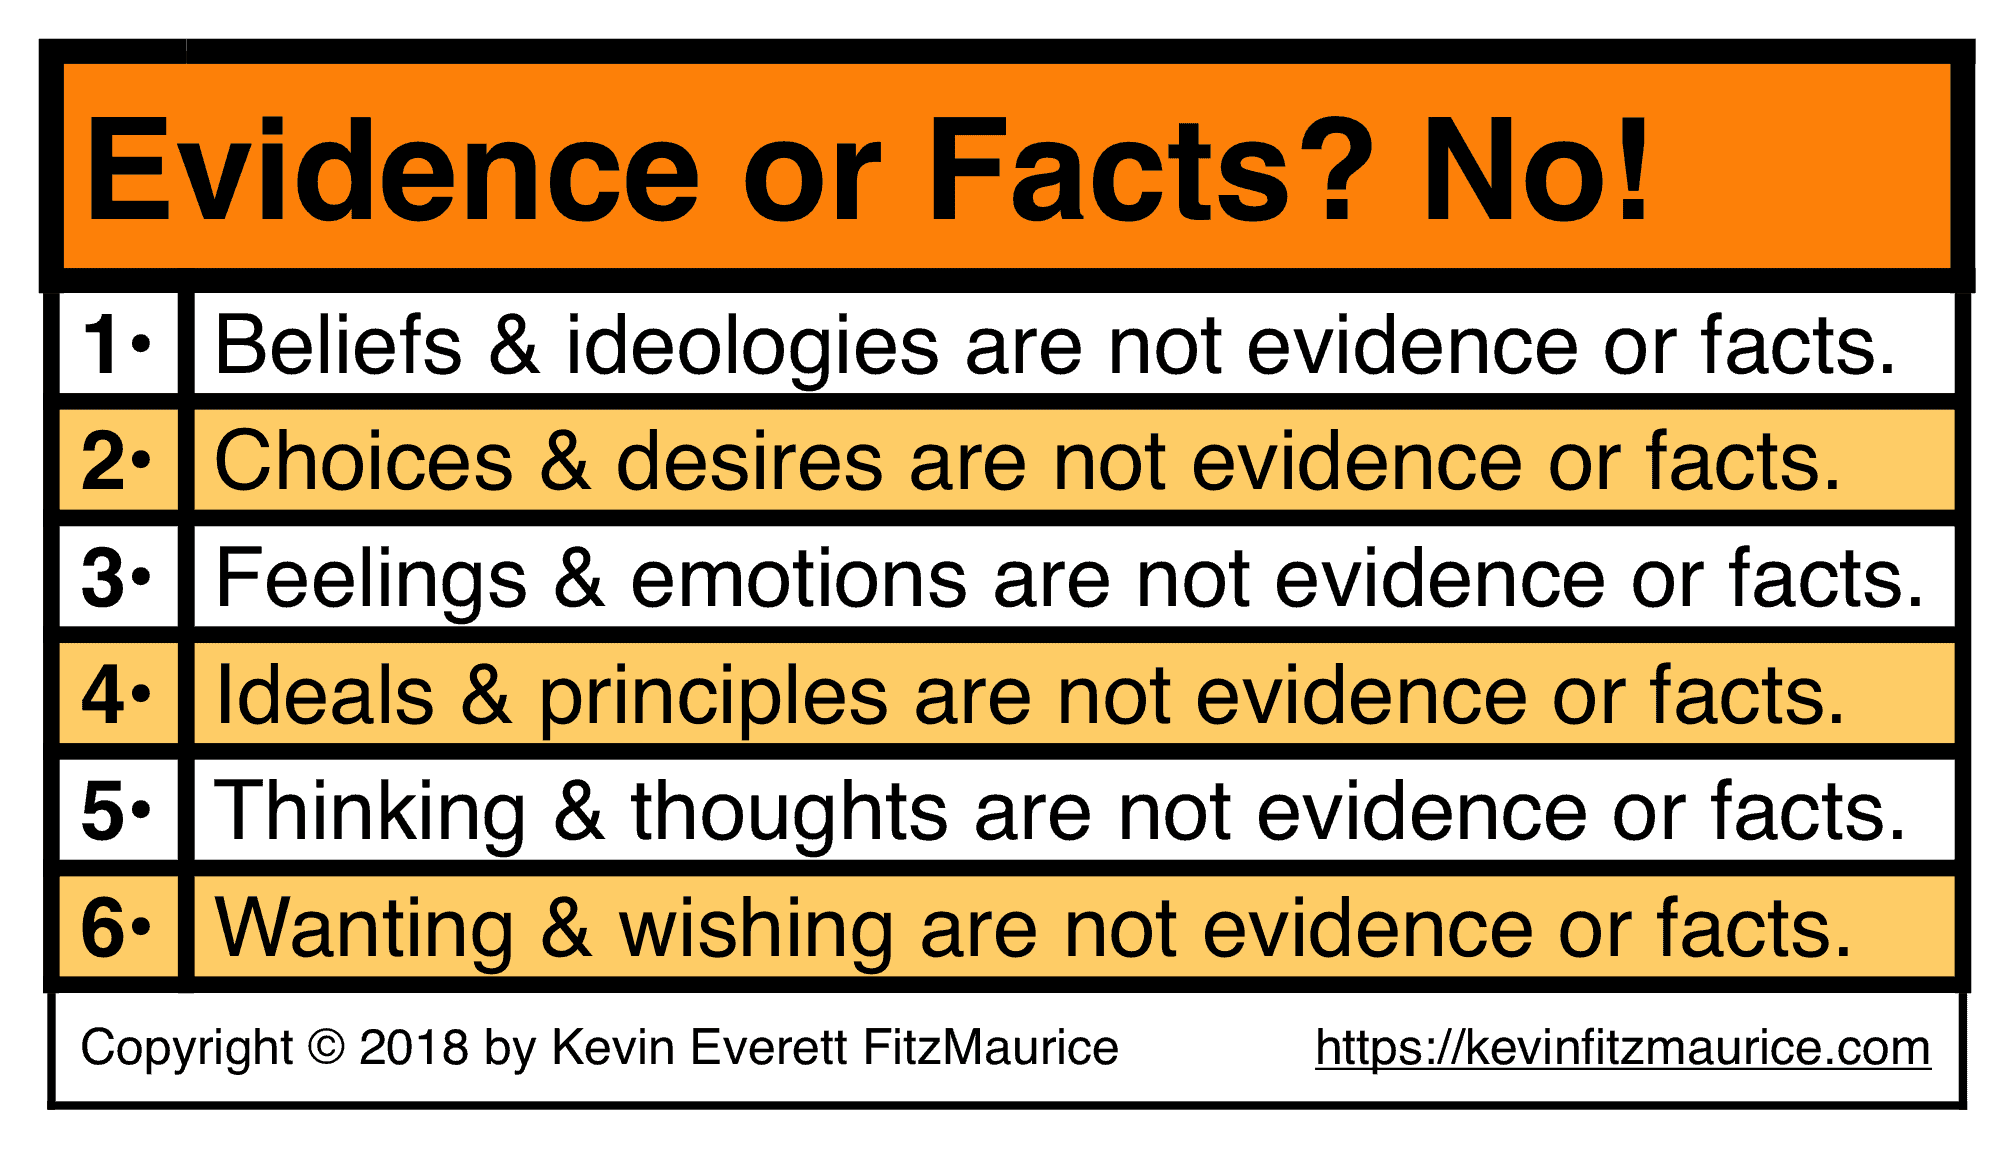 What are not evidence or facts?